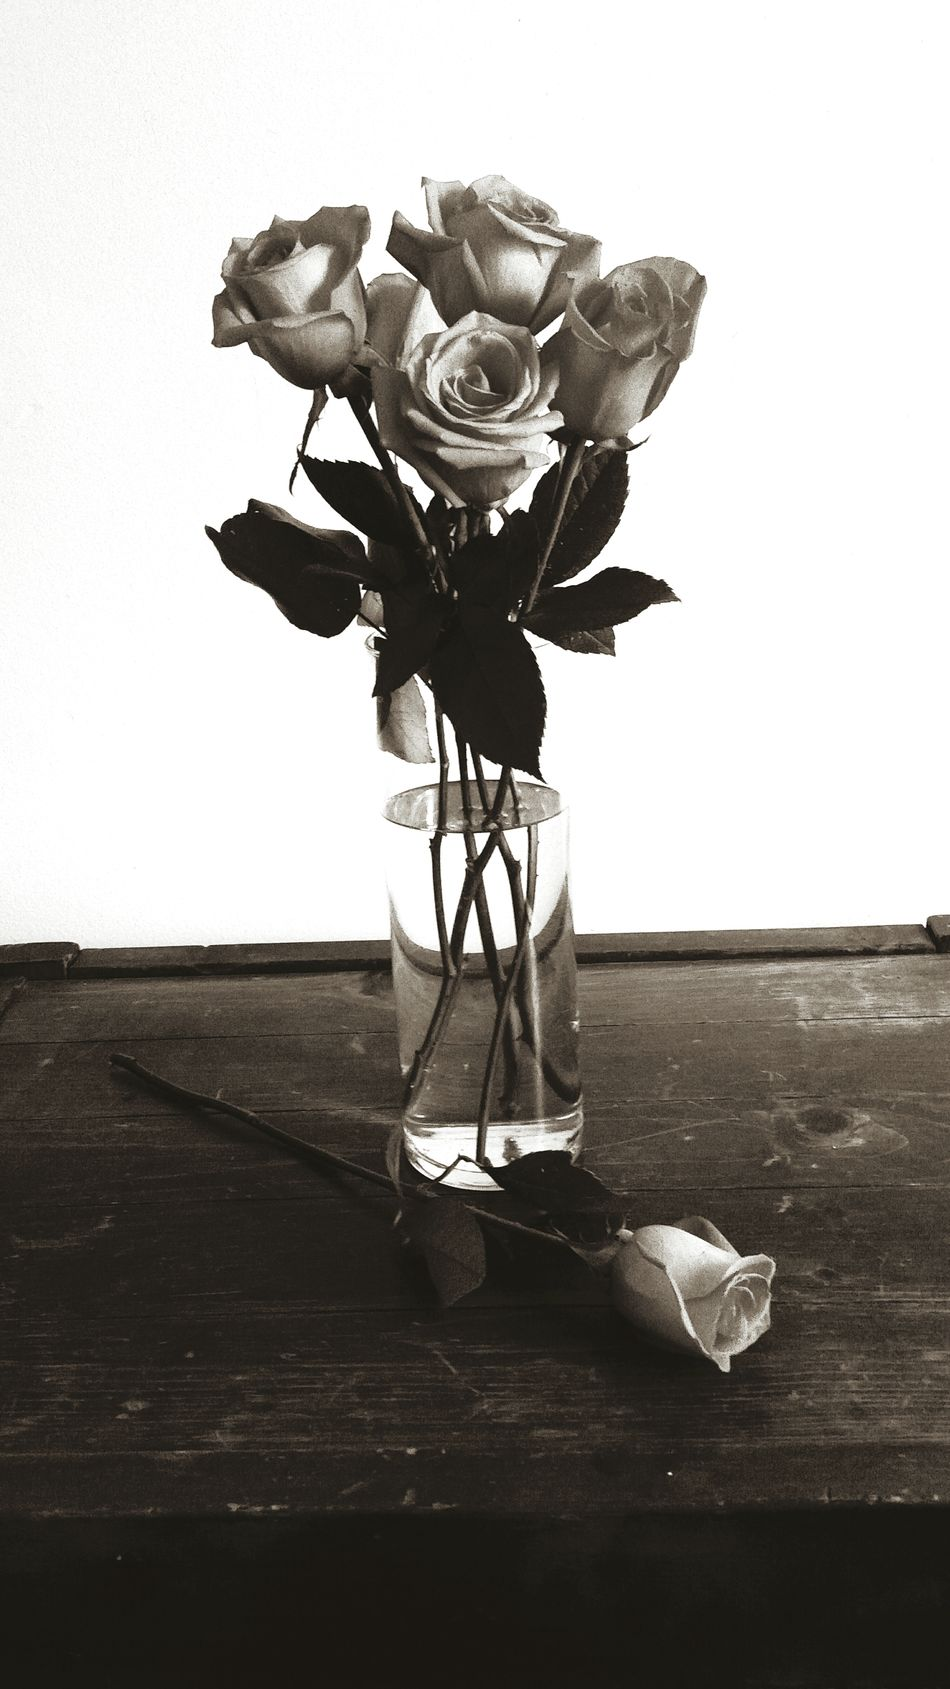 Roses Roses🌹 Vase Vase Of Flowers Six Half Dozen Petals Leaves Stems Sepia Sepiatone Sepia_collection Vintage Love Showing Imperfection Scratches Rustic